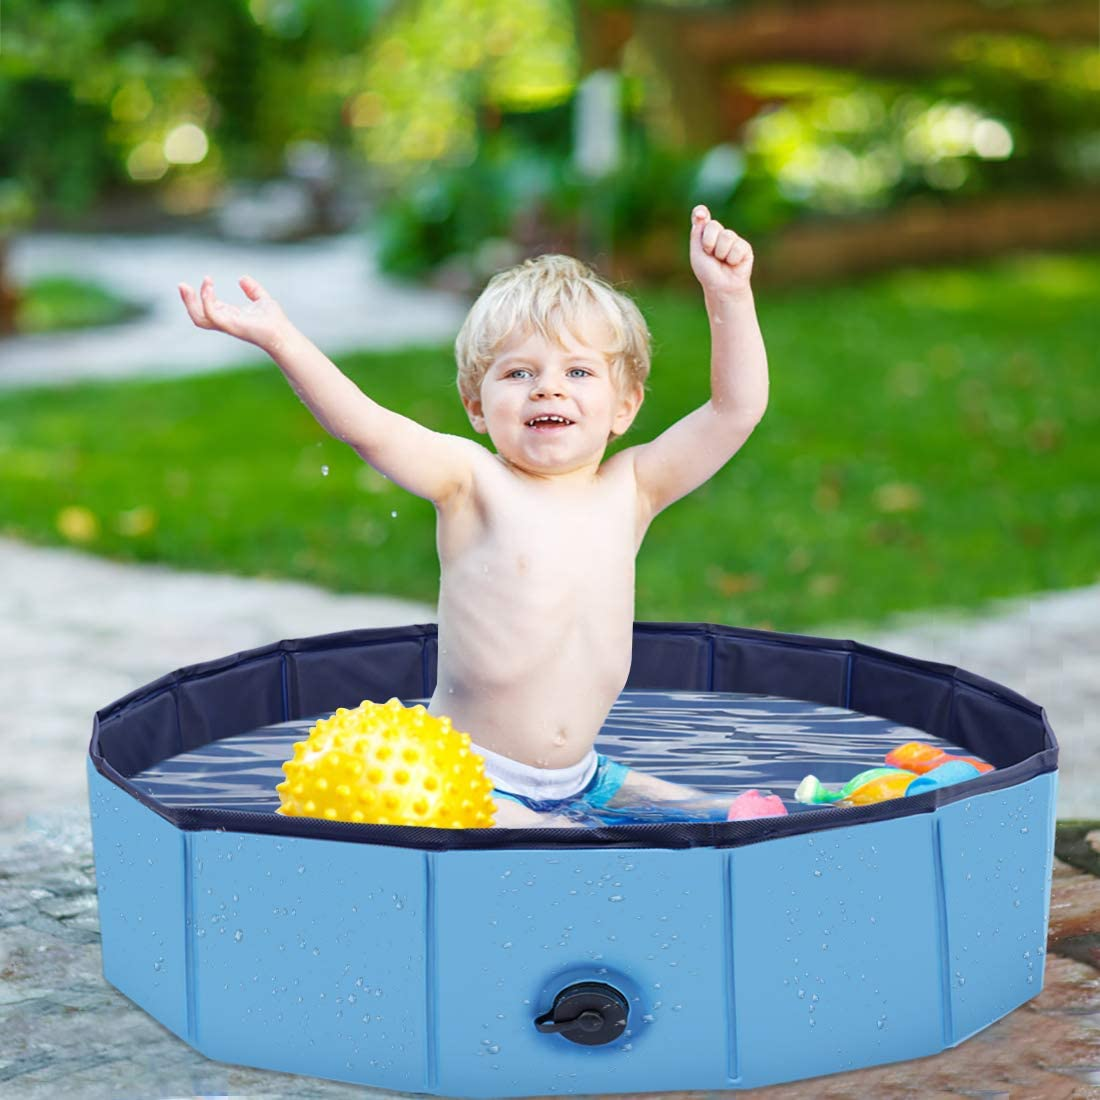 100x30CM Foldable Dogs Cats Padding Pool Kids Swimming Bathing Tub Kid Ball Water Ponds Pet Pool to Swim and Bath in Garden Patio Bathroom PVC Bathtub Collapsible Water Pond Pool /& Kiddie Pools